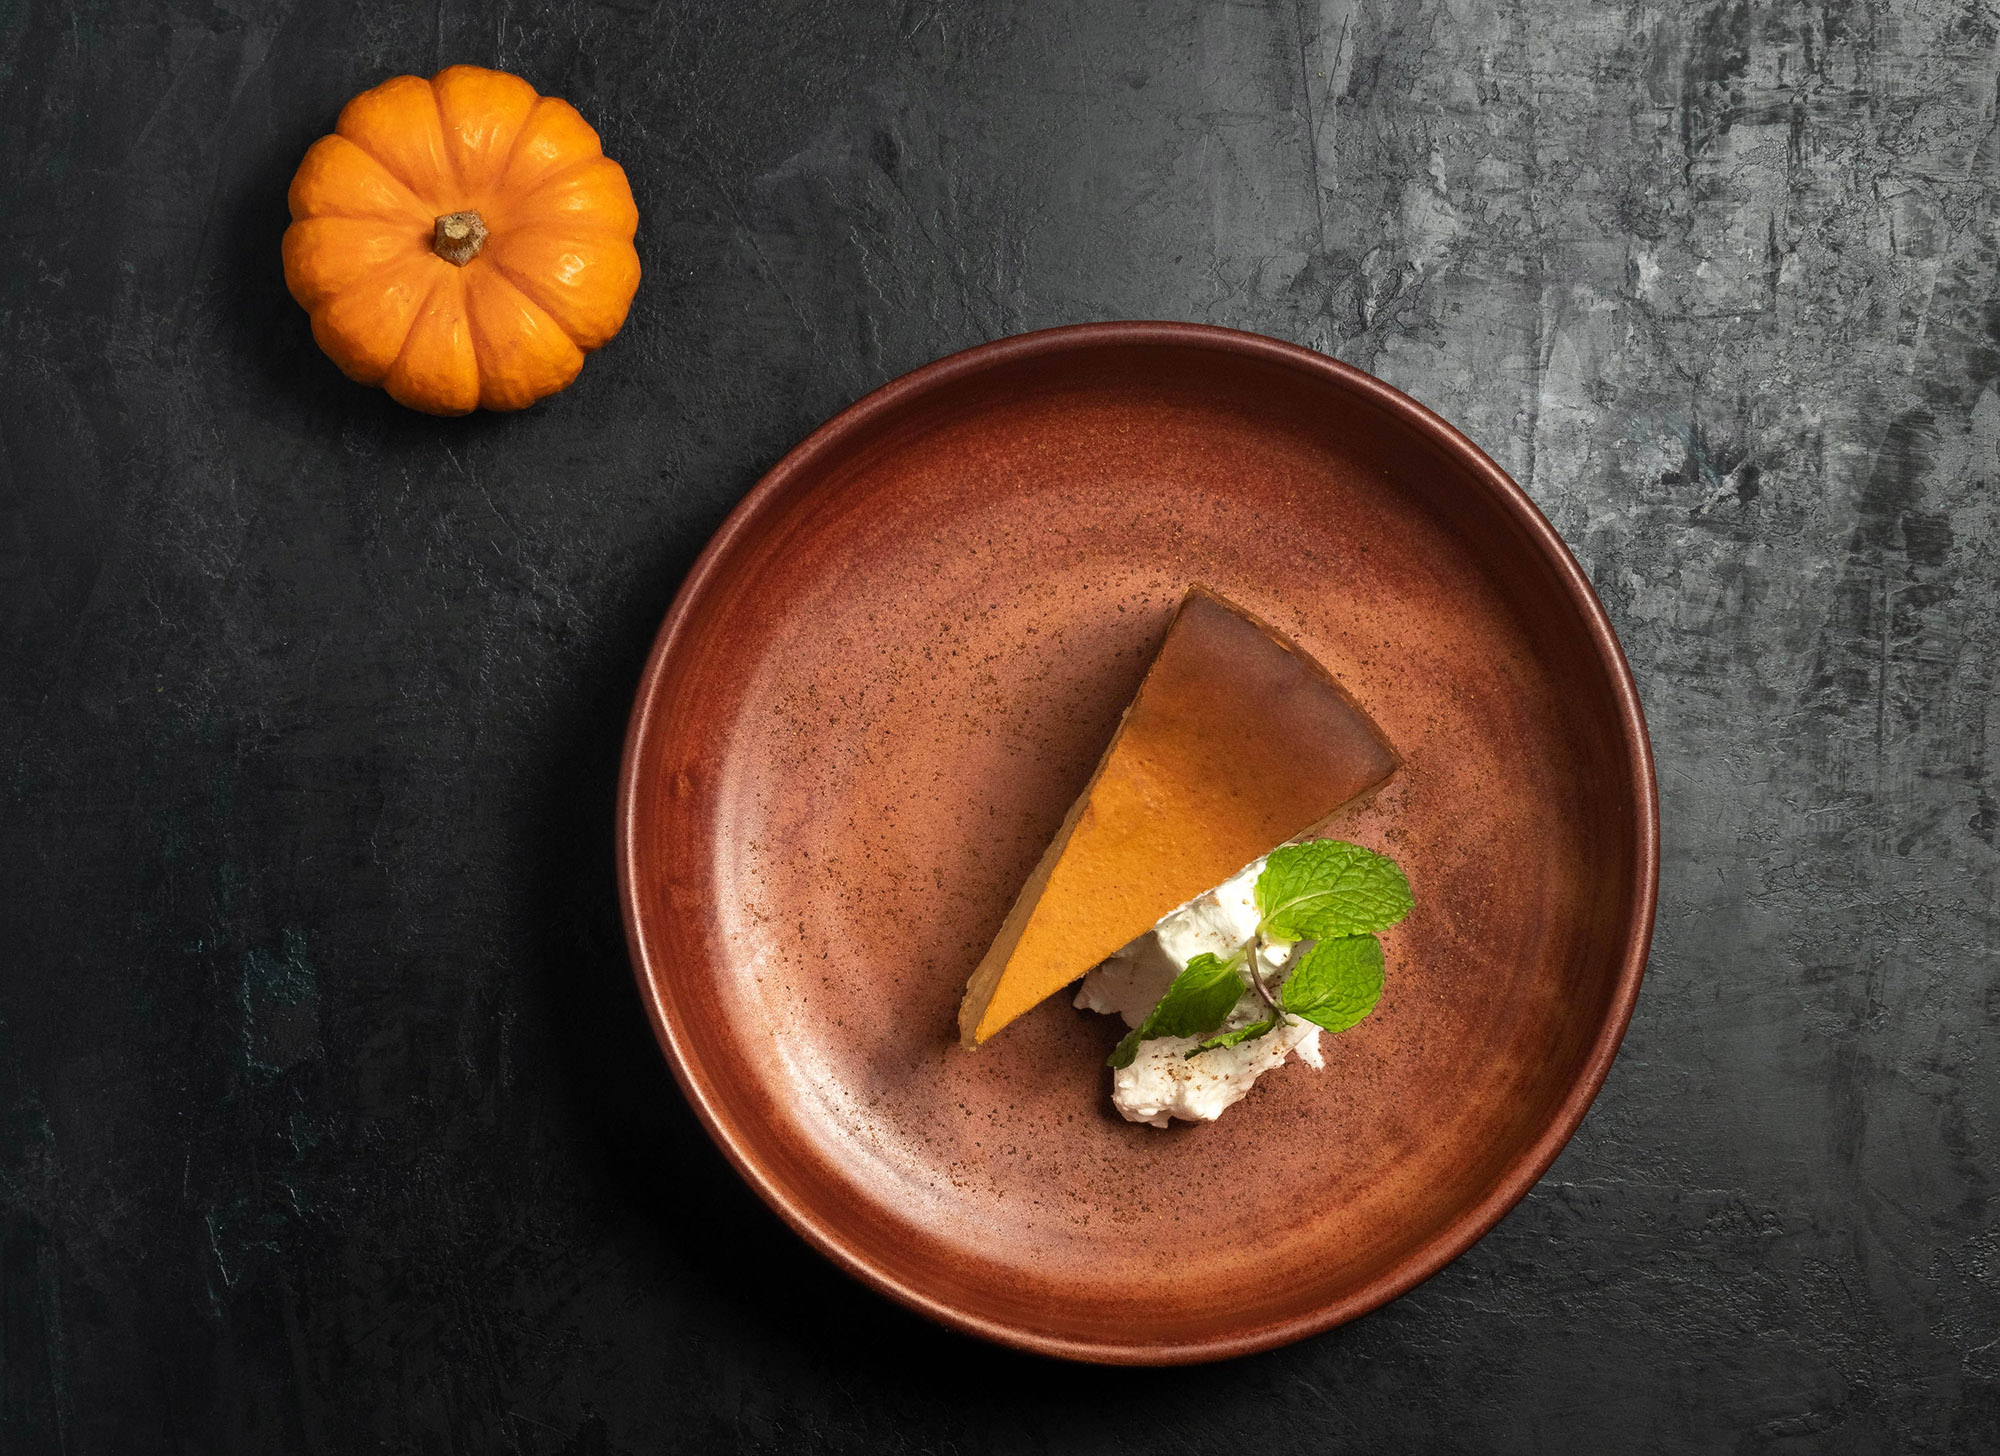 Fall is here and so is our pumpkin cheesecake! This classic, fall favorite is back at King's Fish House for the season.